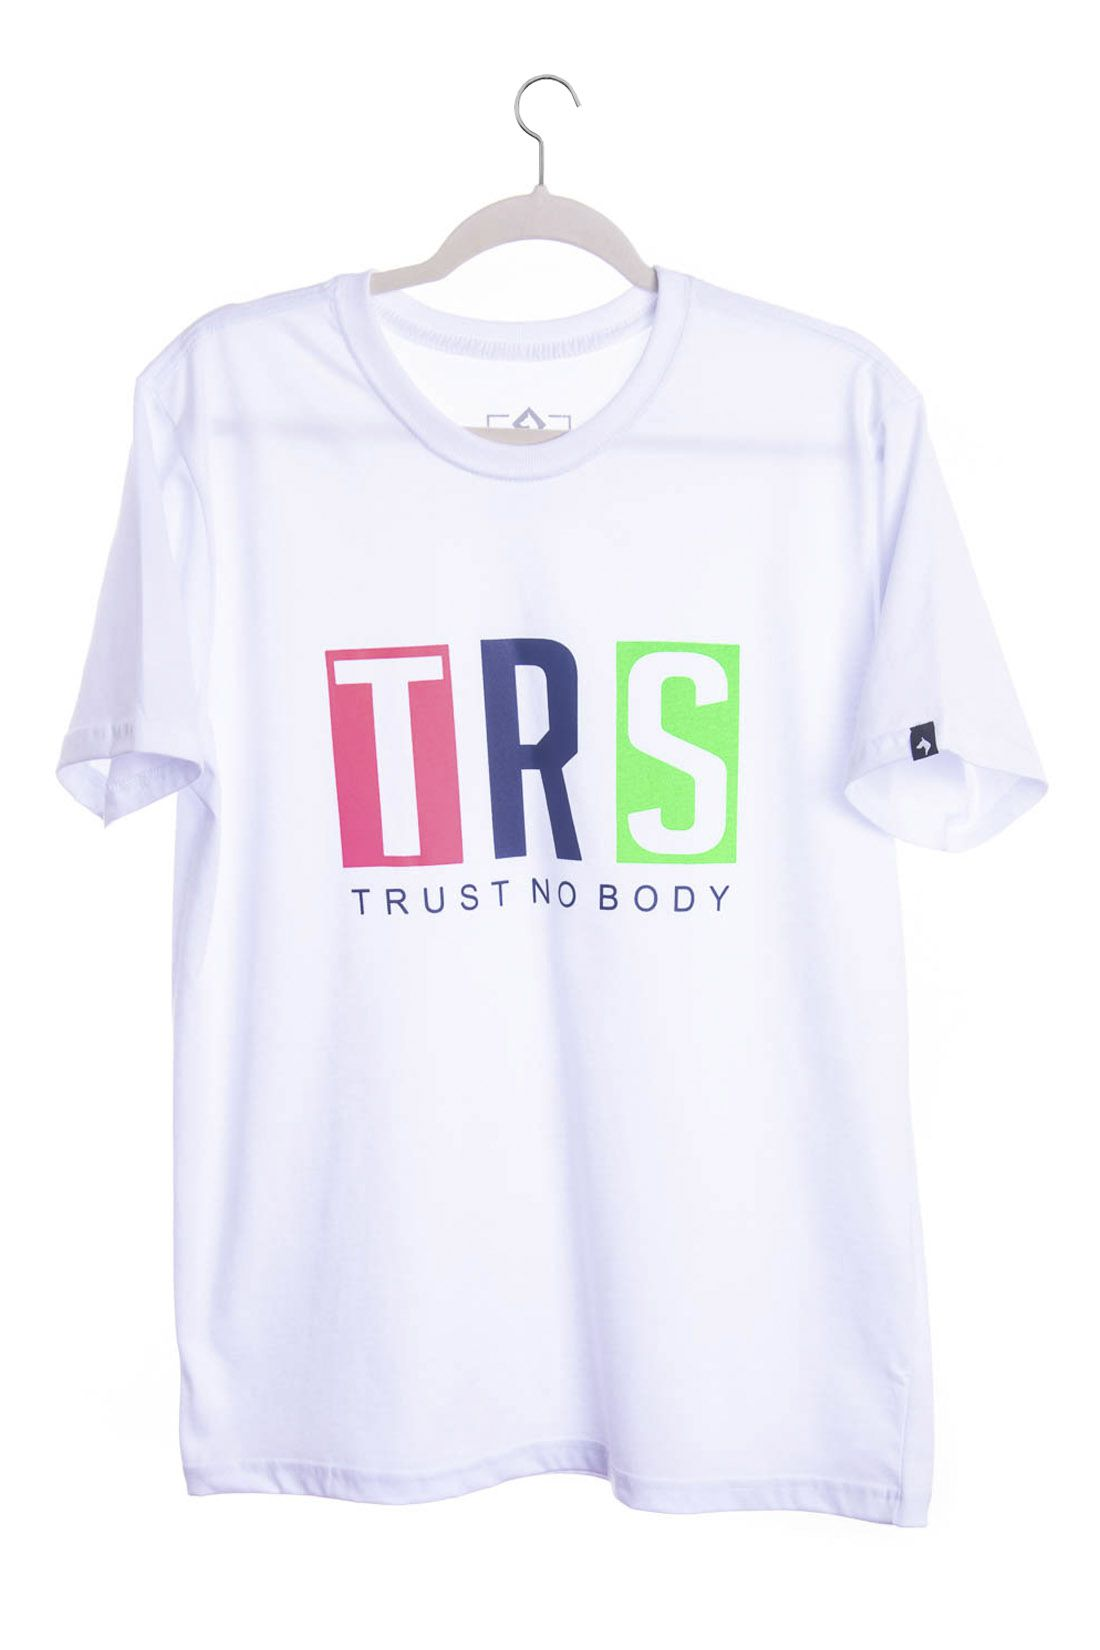 Camiseta Manga Curta TRS Trusty Nobody The Rocks